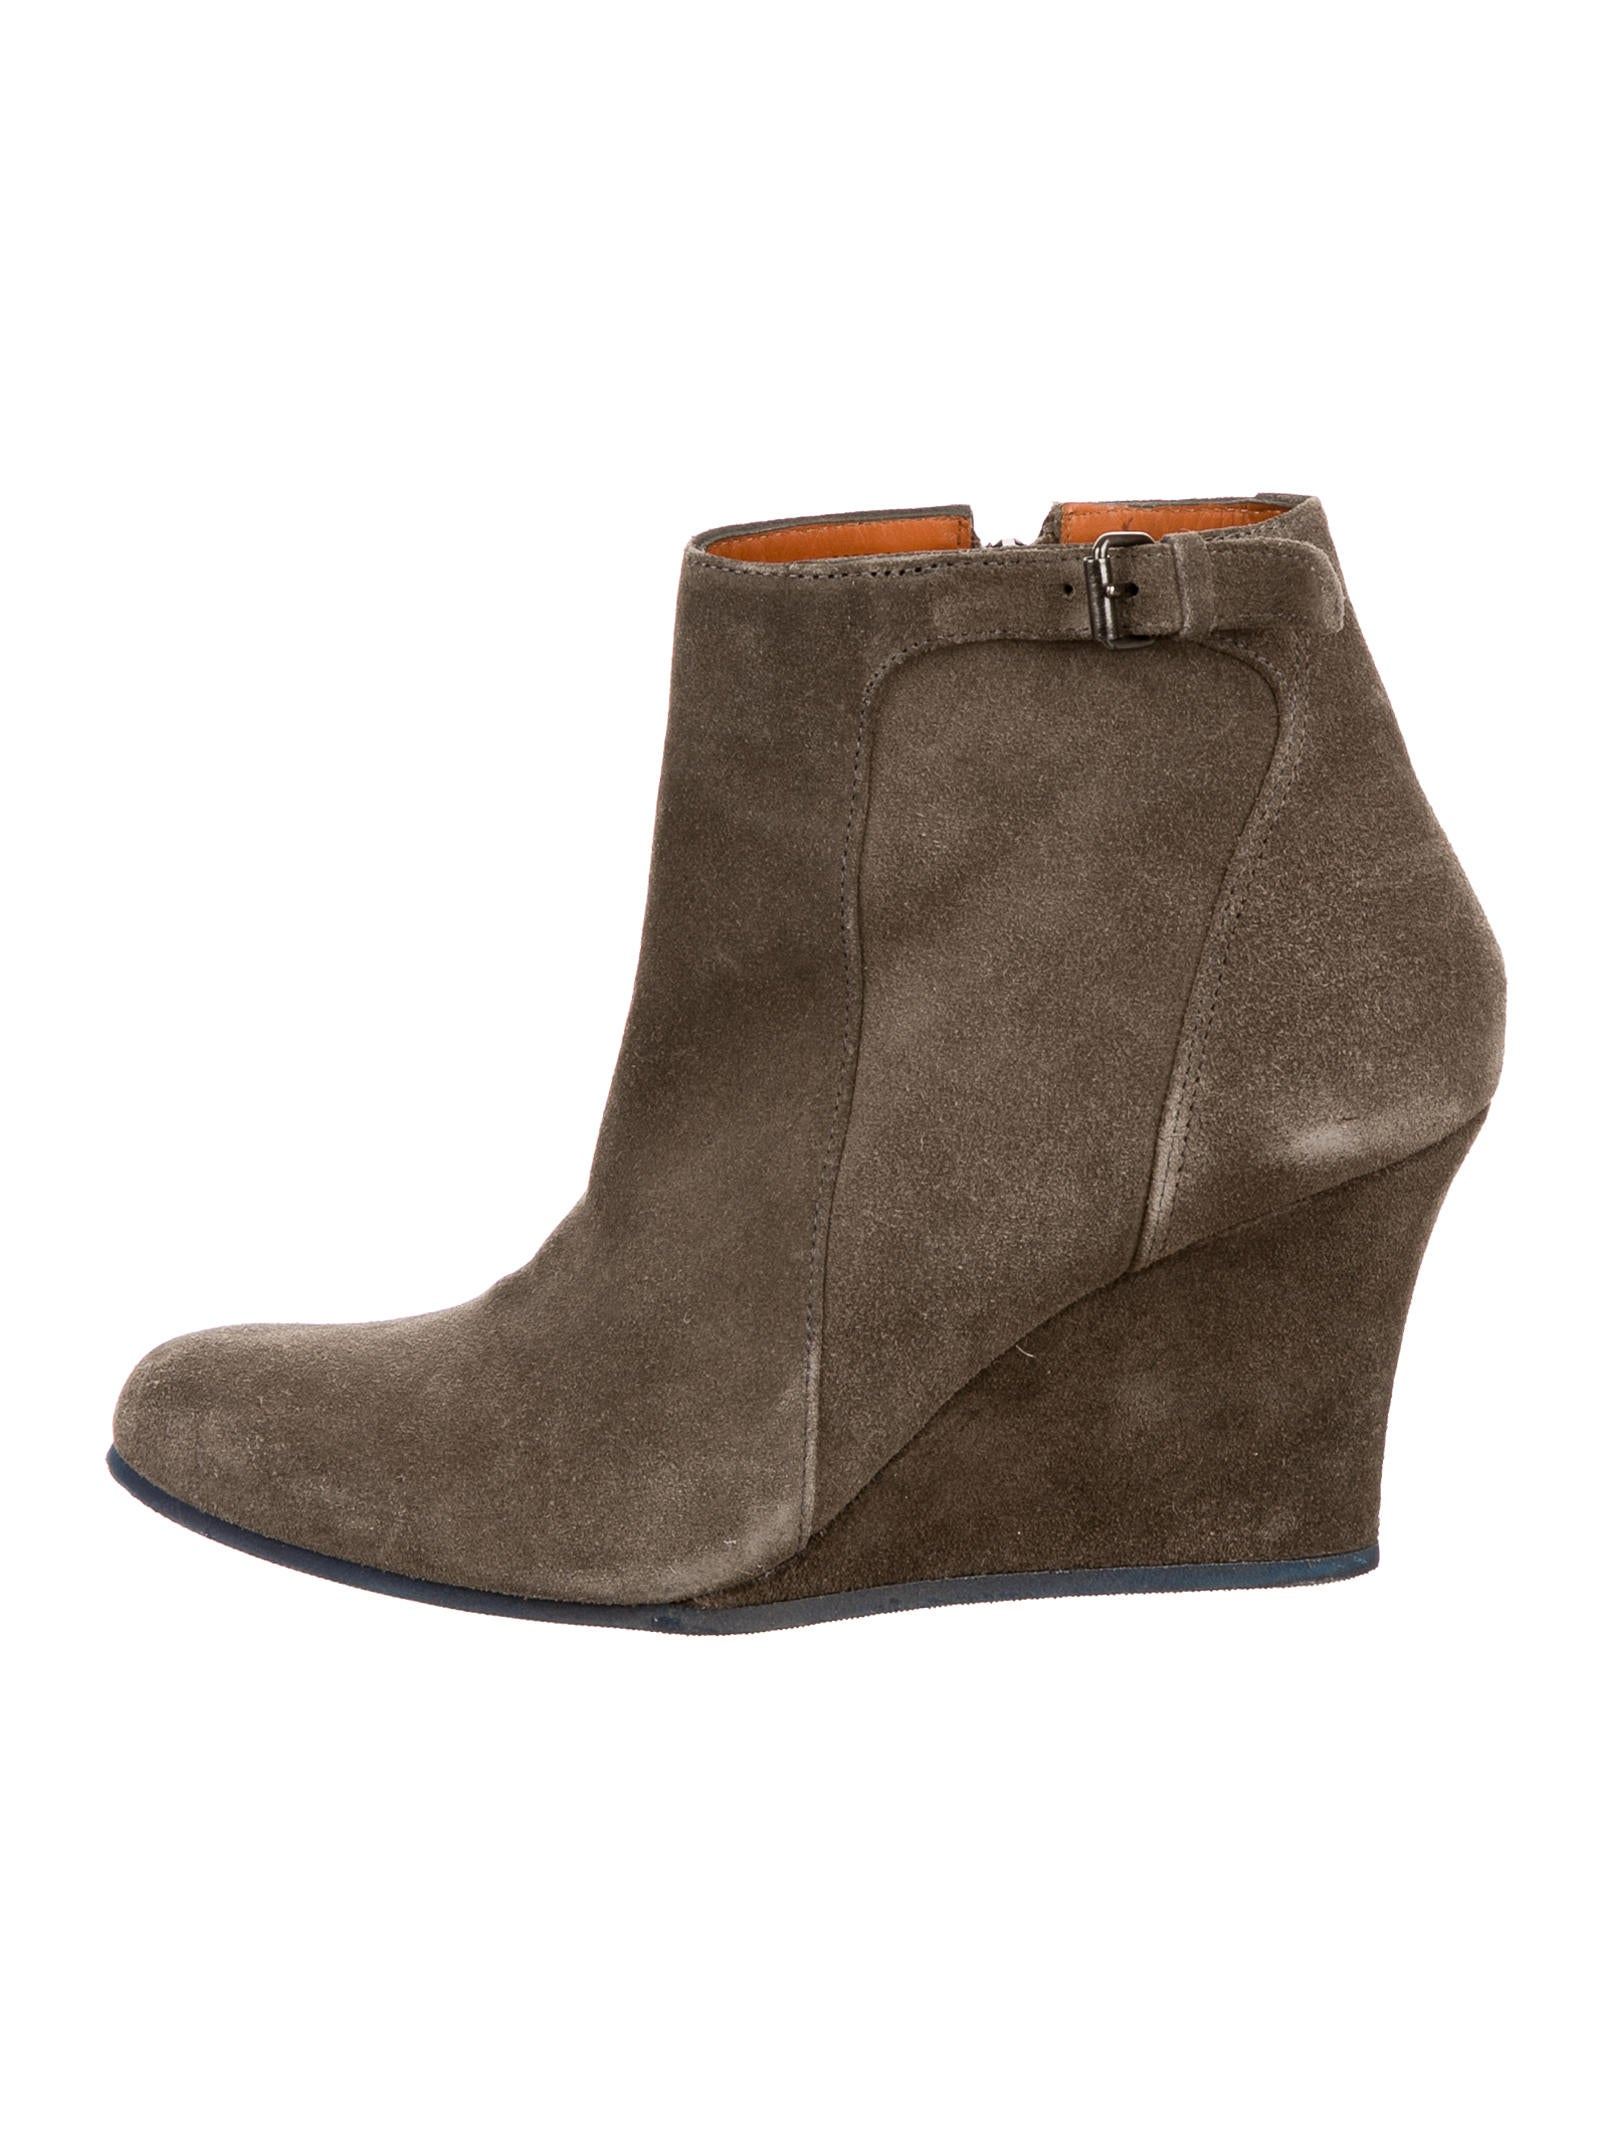 Free shipping on women's booties at hereuloadu5.ga Shop all types of ankle boots, chelsea boots, and short boots for women from the best brands including Steve Madden, Sam Edelman, Vince Camuto and more. Totally free shipping & returns.